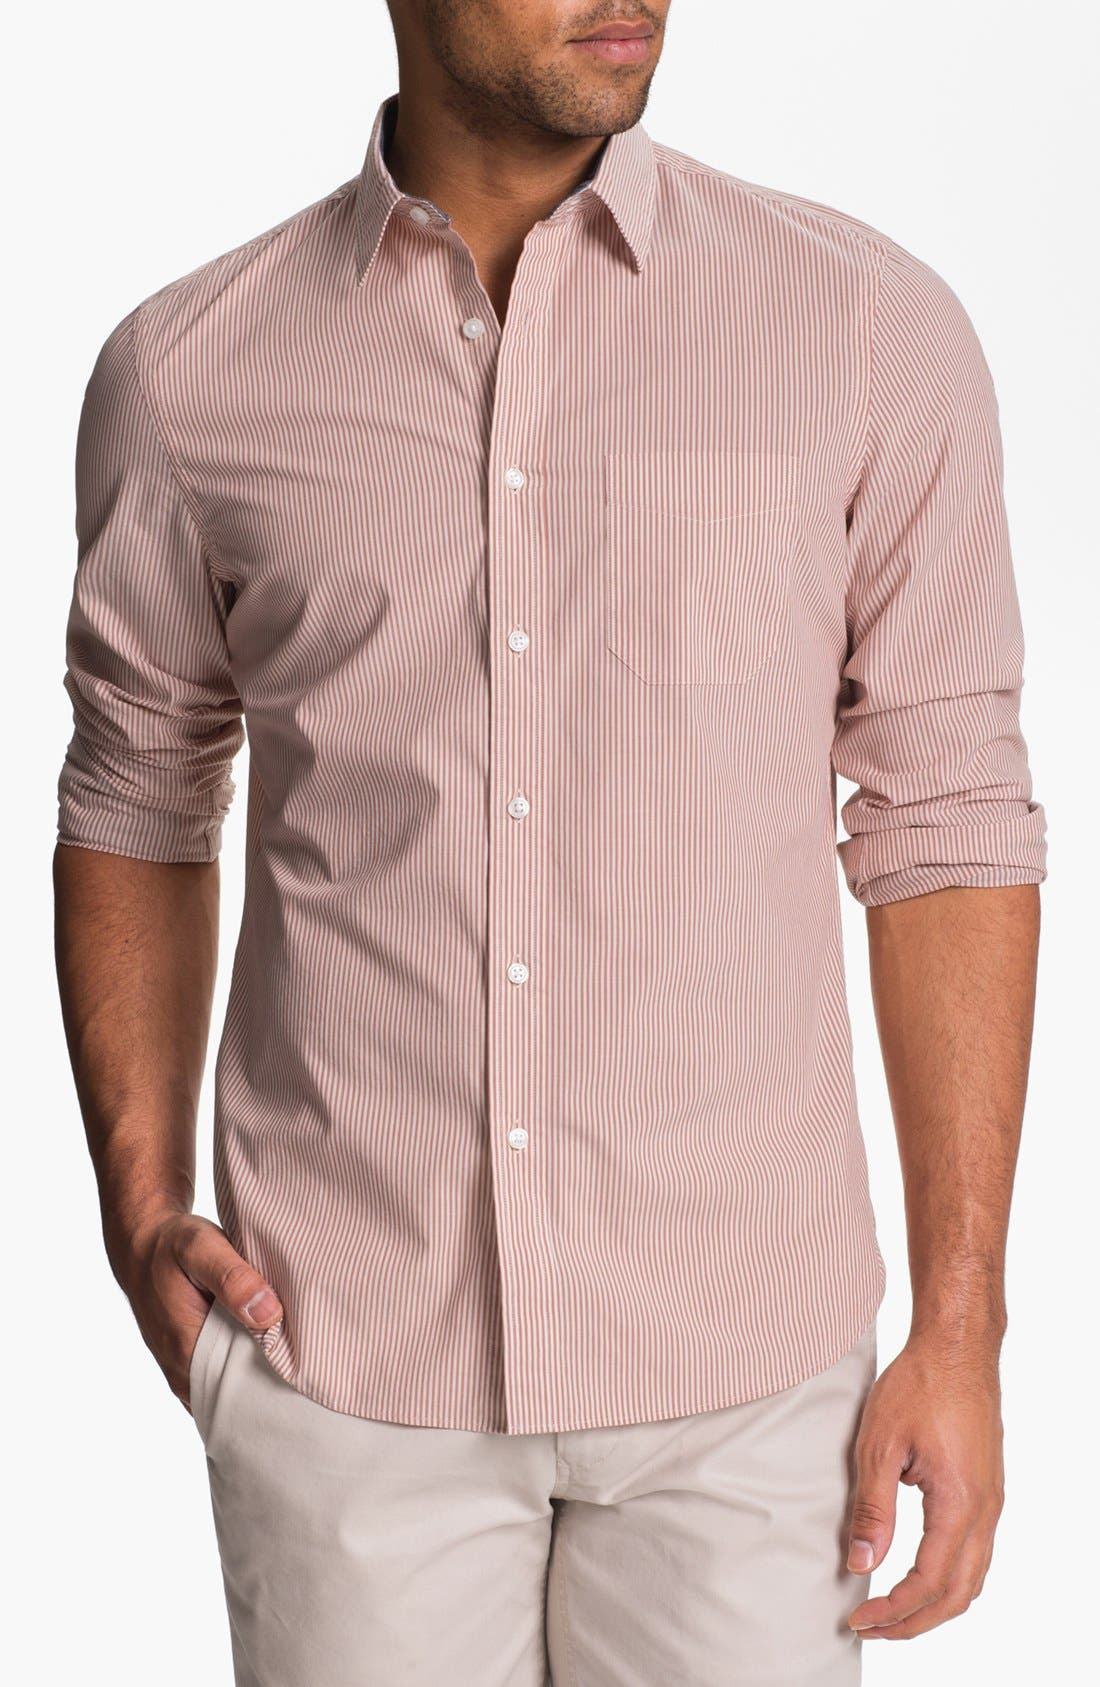 Alternate Image 1 Selected - Wallin & Bros. Trim Fit Poplin Sport Shirt